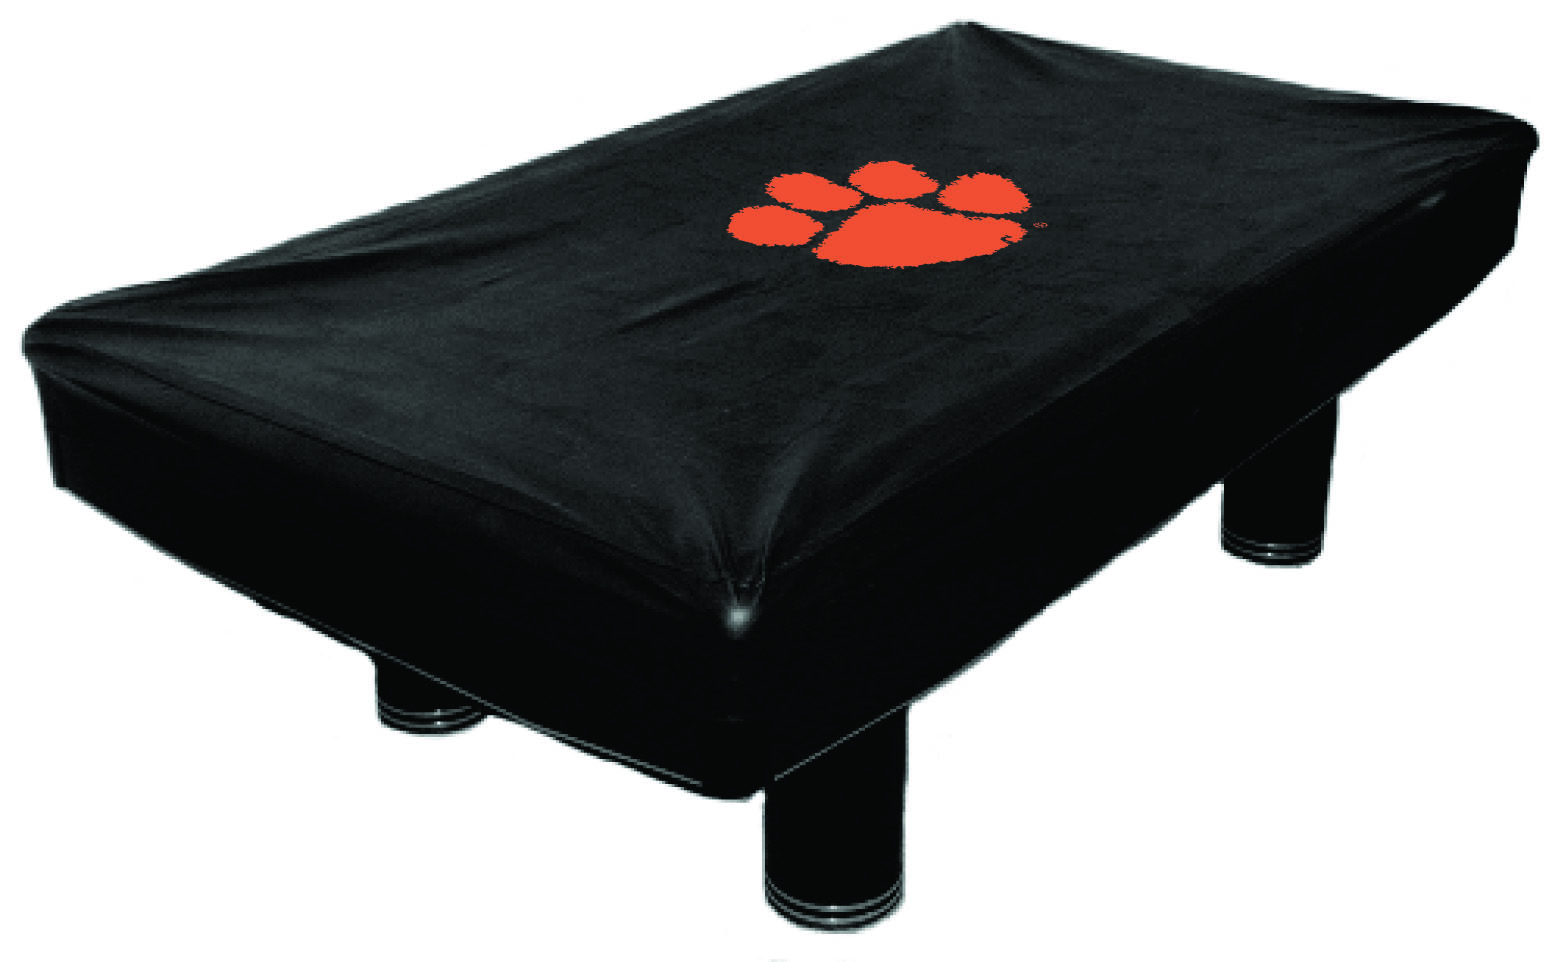 7 Ft Clemson Tigers CLMBTC100N-7 Fitted Billiard Pool